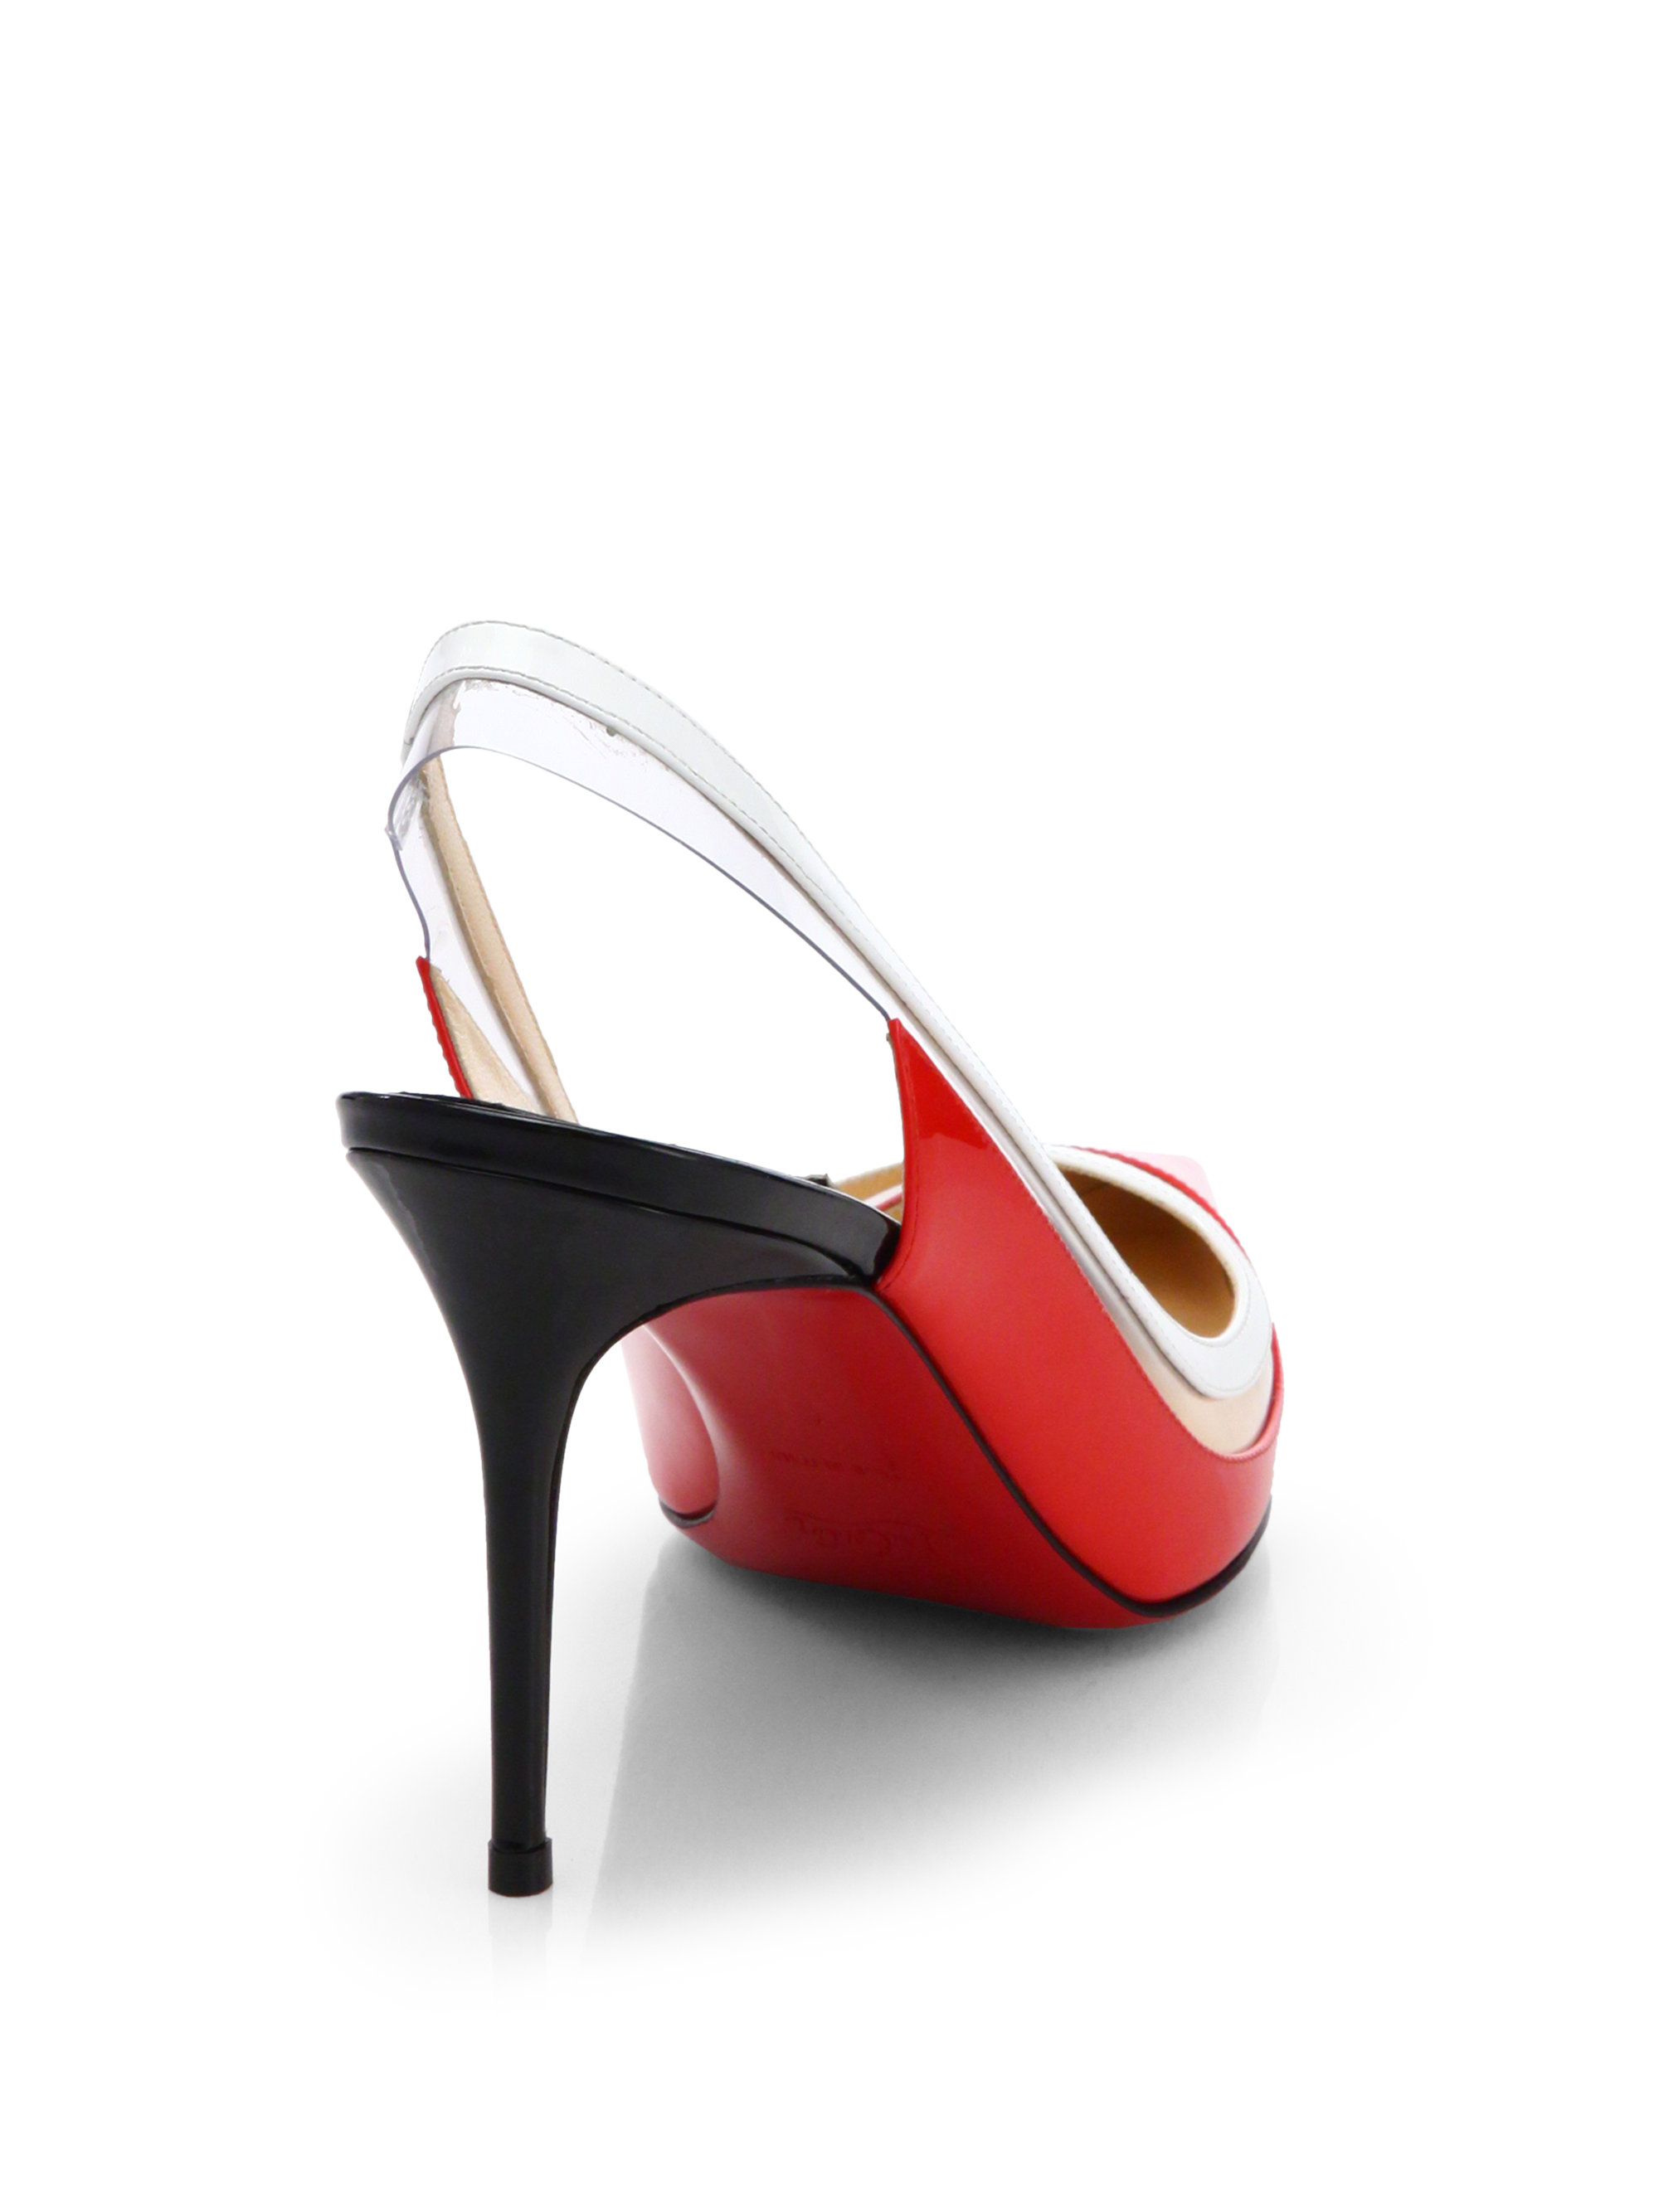 christian louboutin patent leather slingback pumps | cosmetics ...